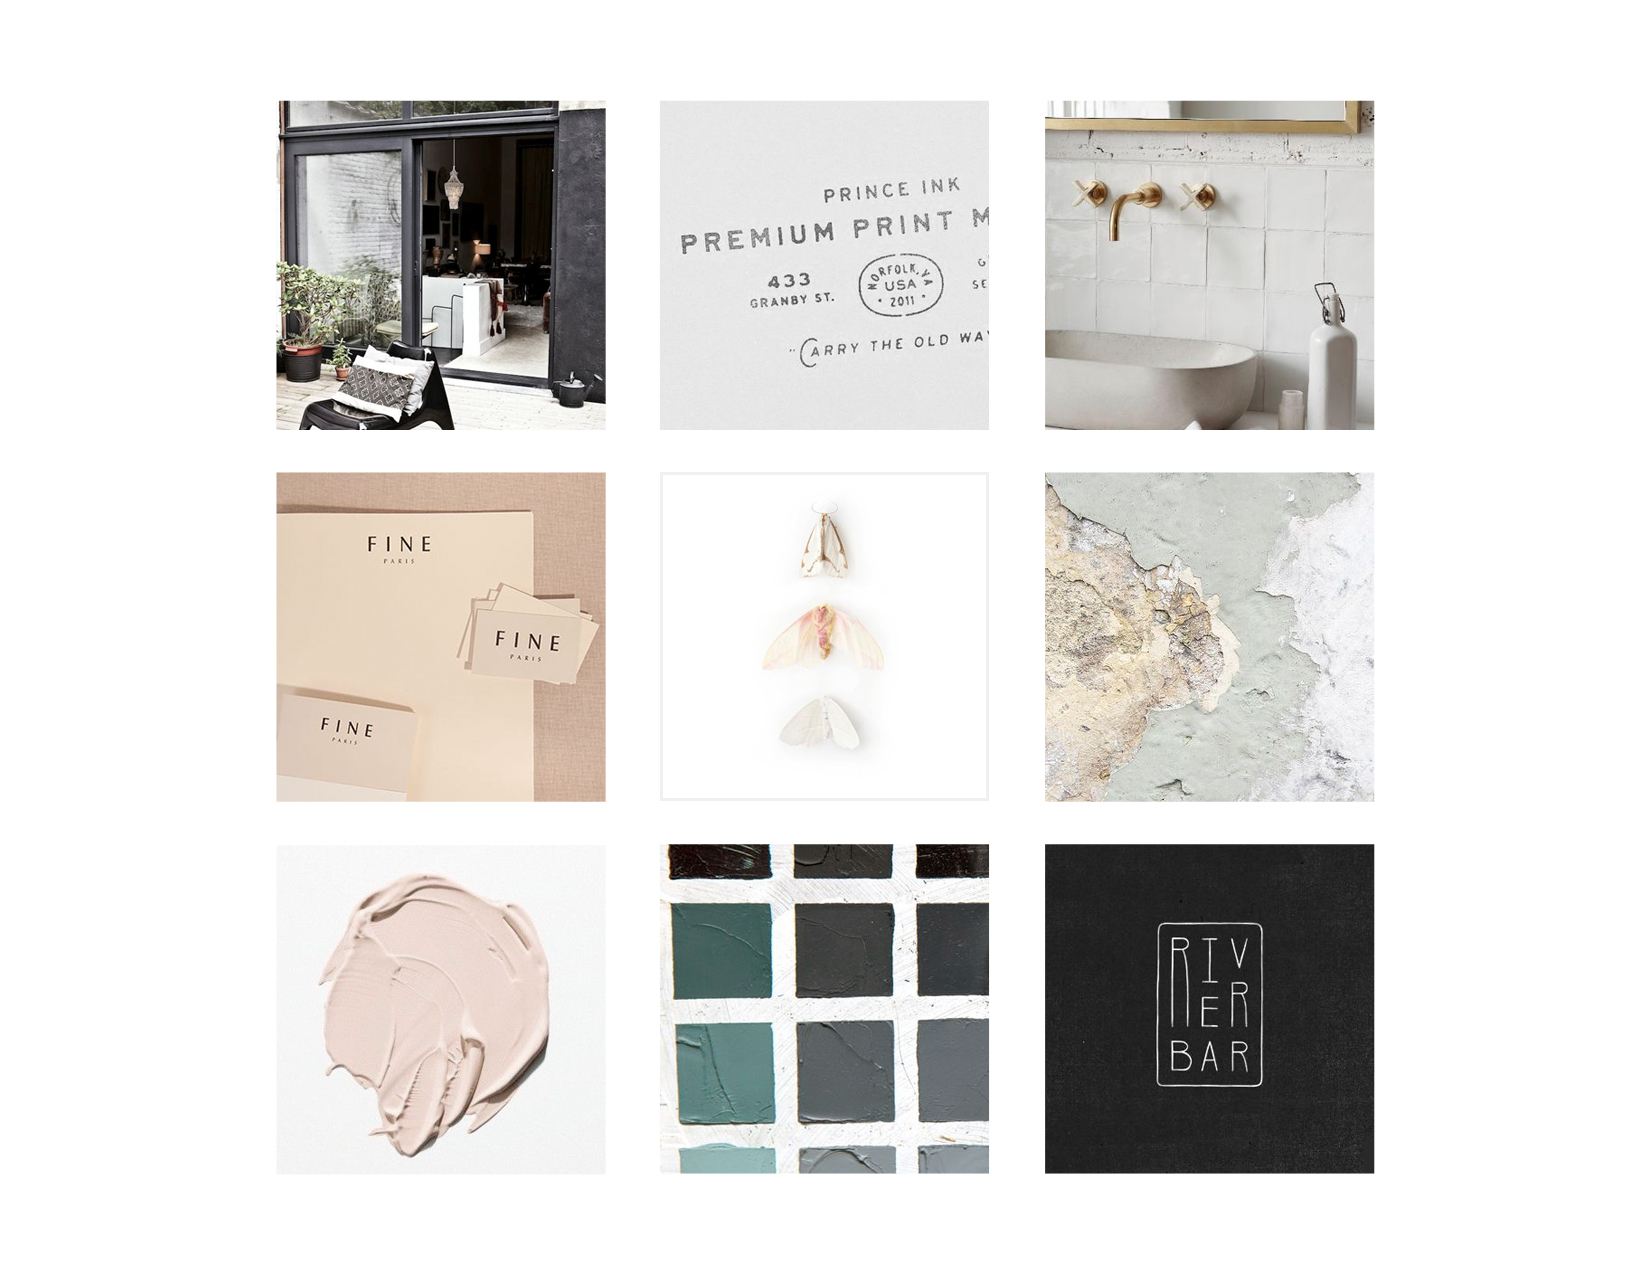 RATE Hotel Group Brand Design: Moodboard and Inspo   Reux Design Co.   Boutique Branding Studio for Holistic and Conscious Small Businesses